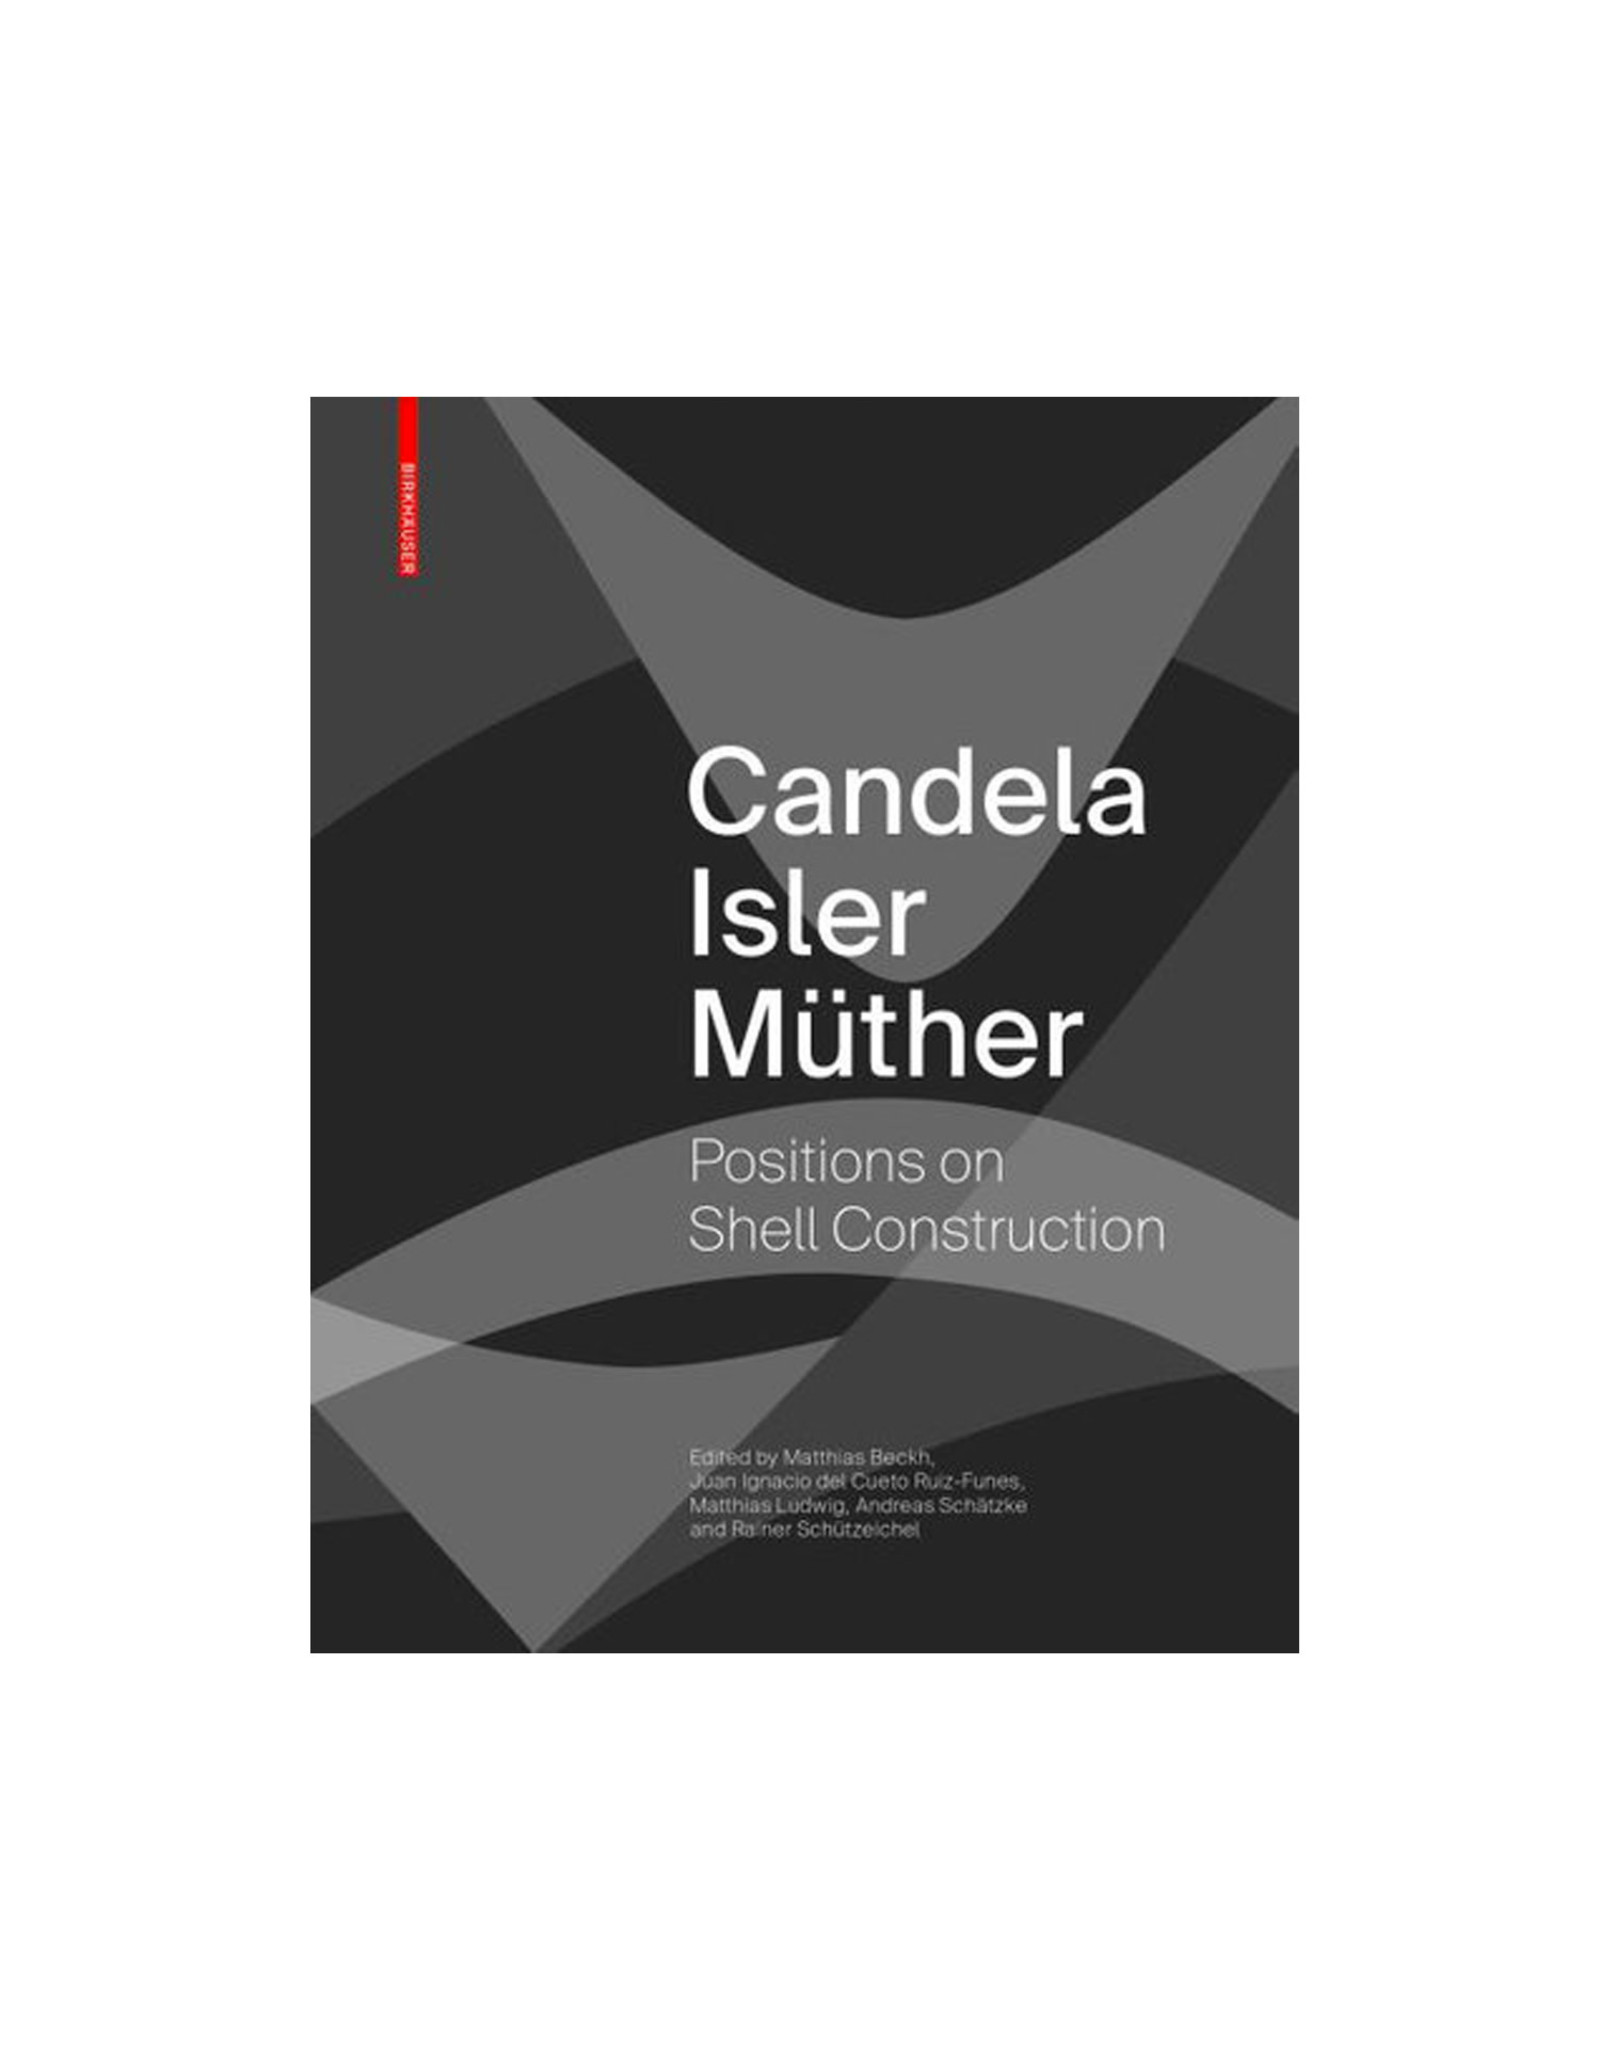 Candela, Isler, Muther: Positions on Shell Construction